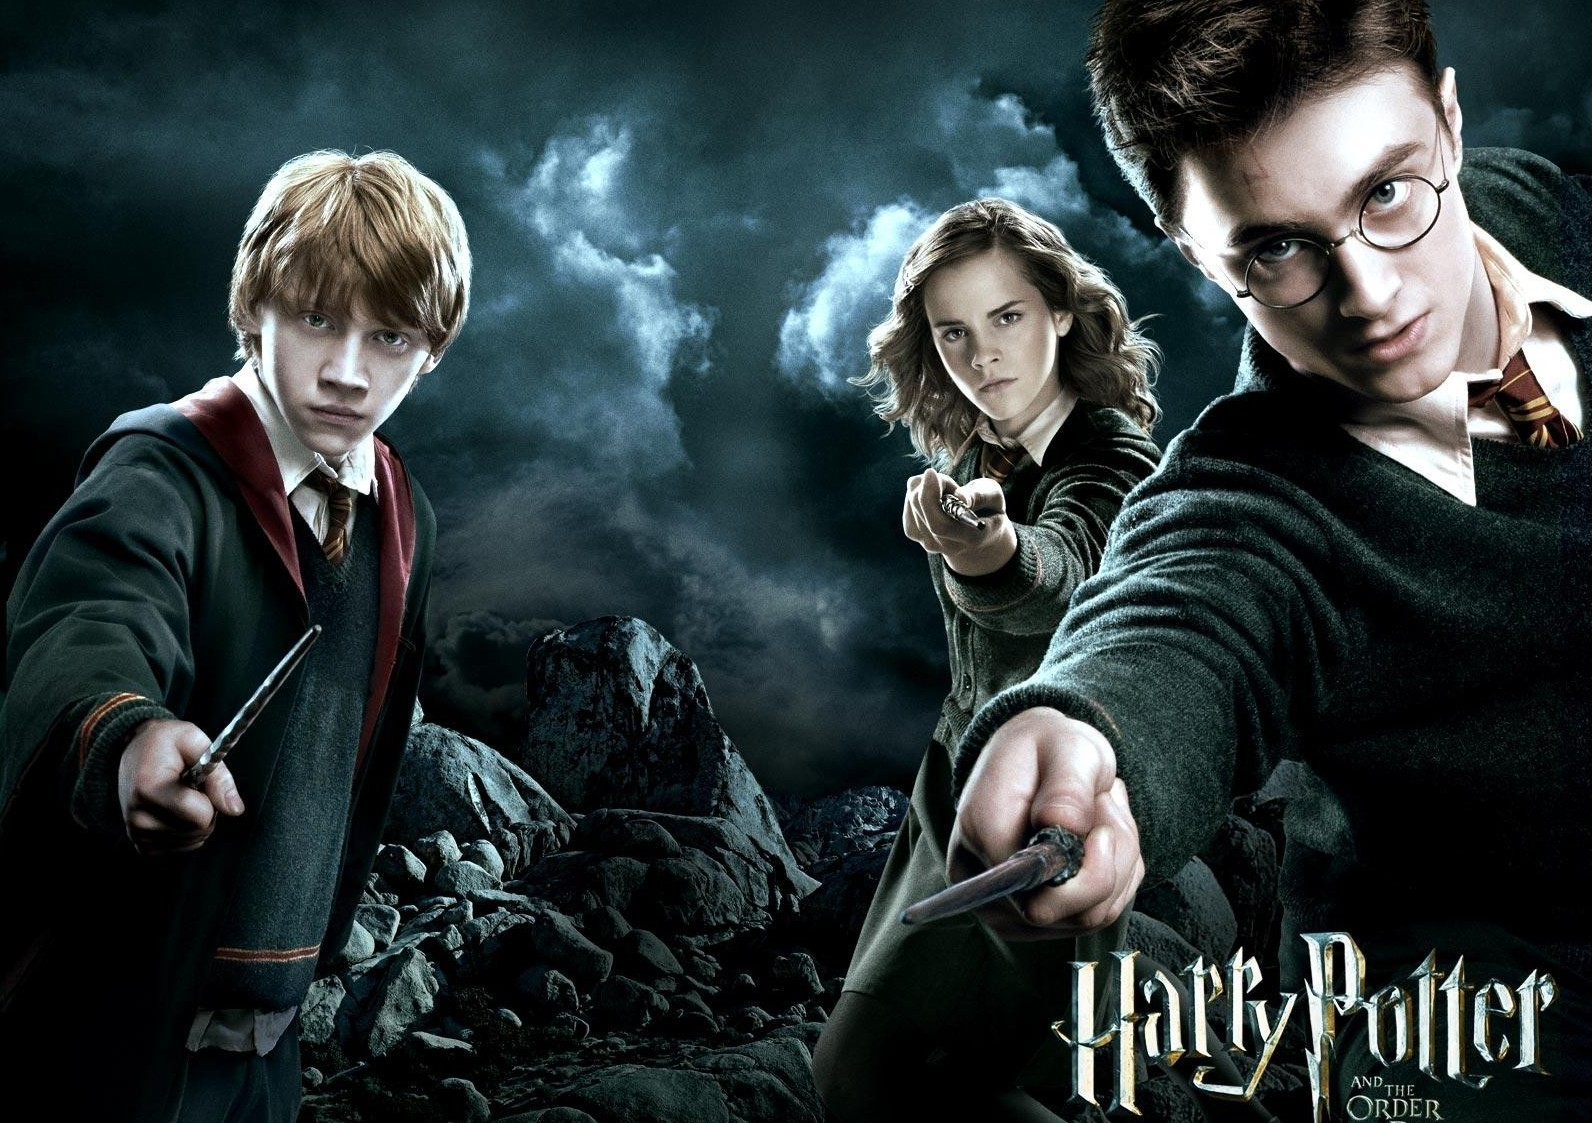 Harry Potter Screensaver Then download this screensaver 1592x1123